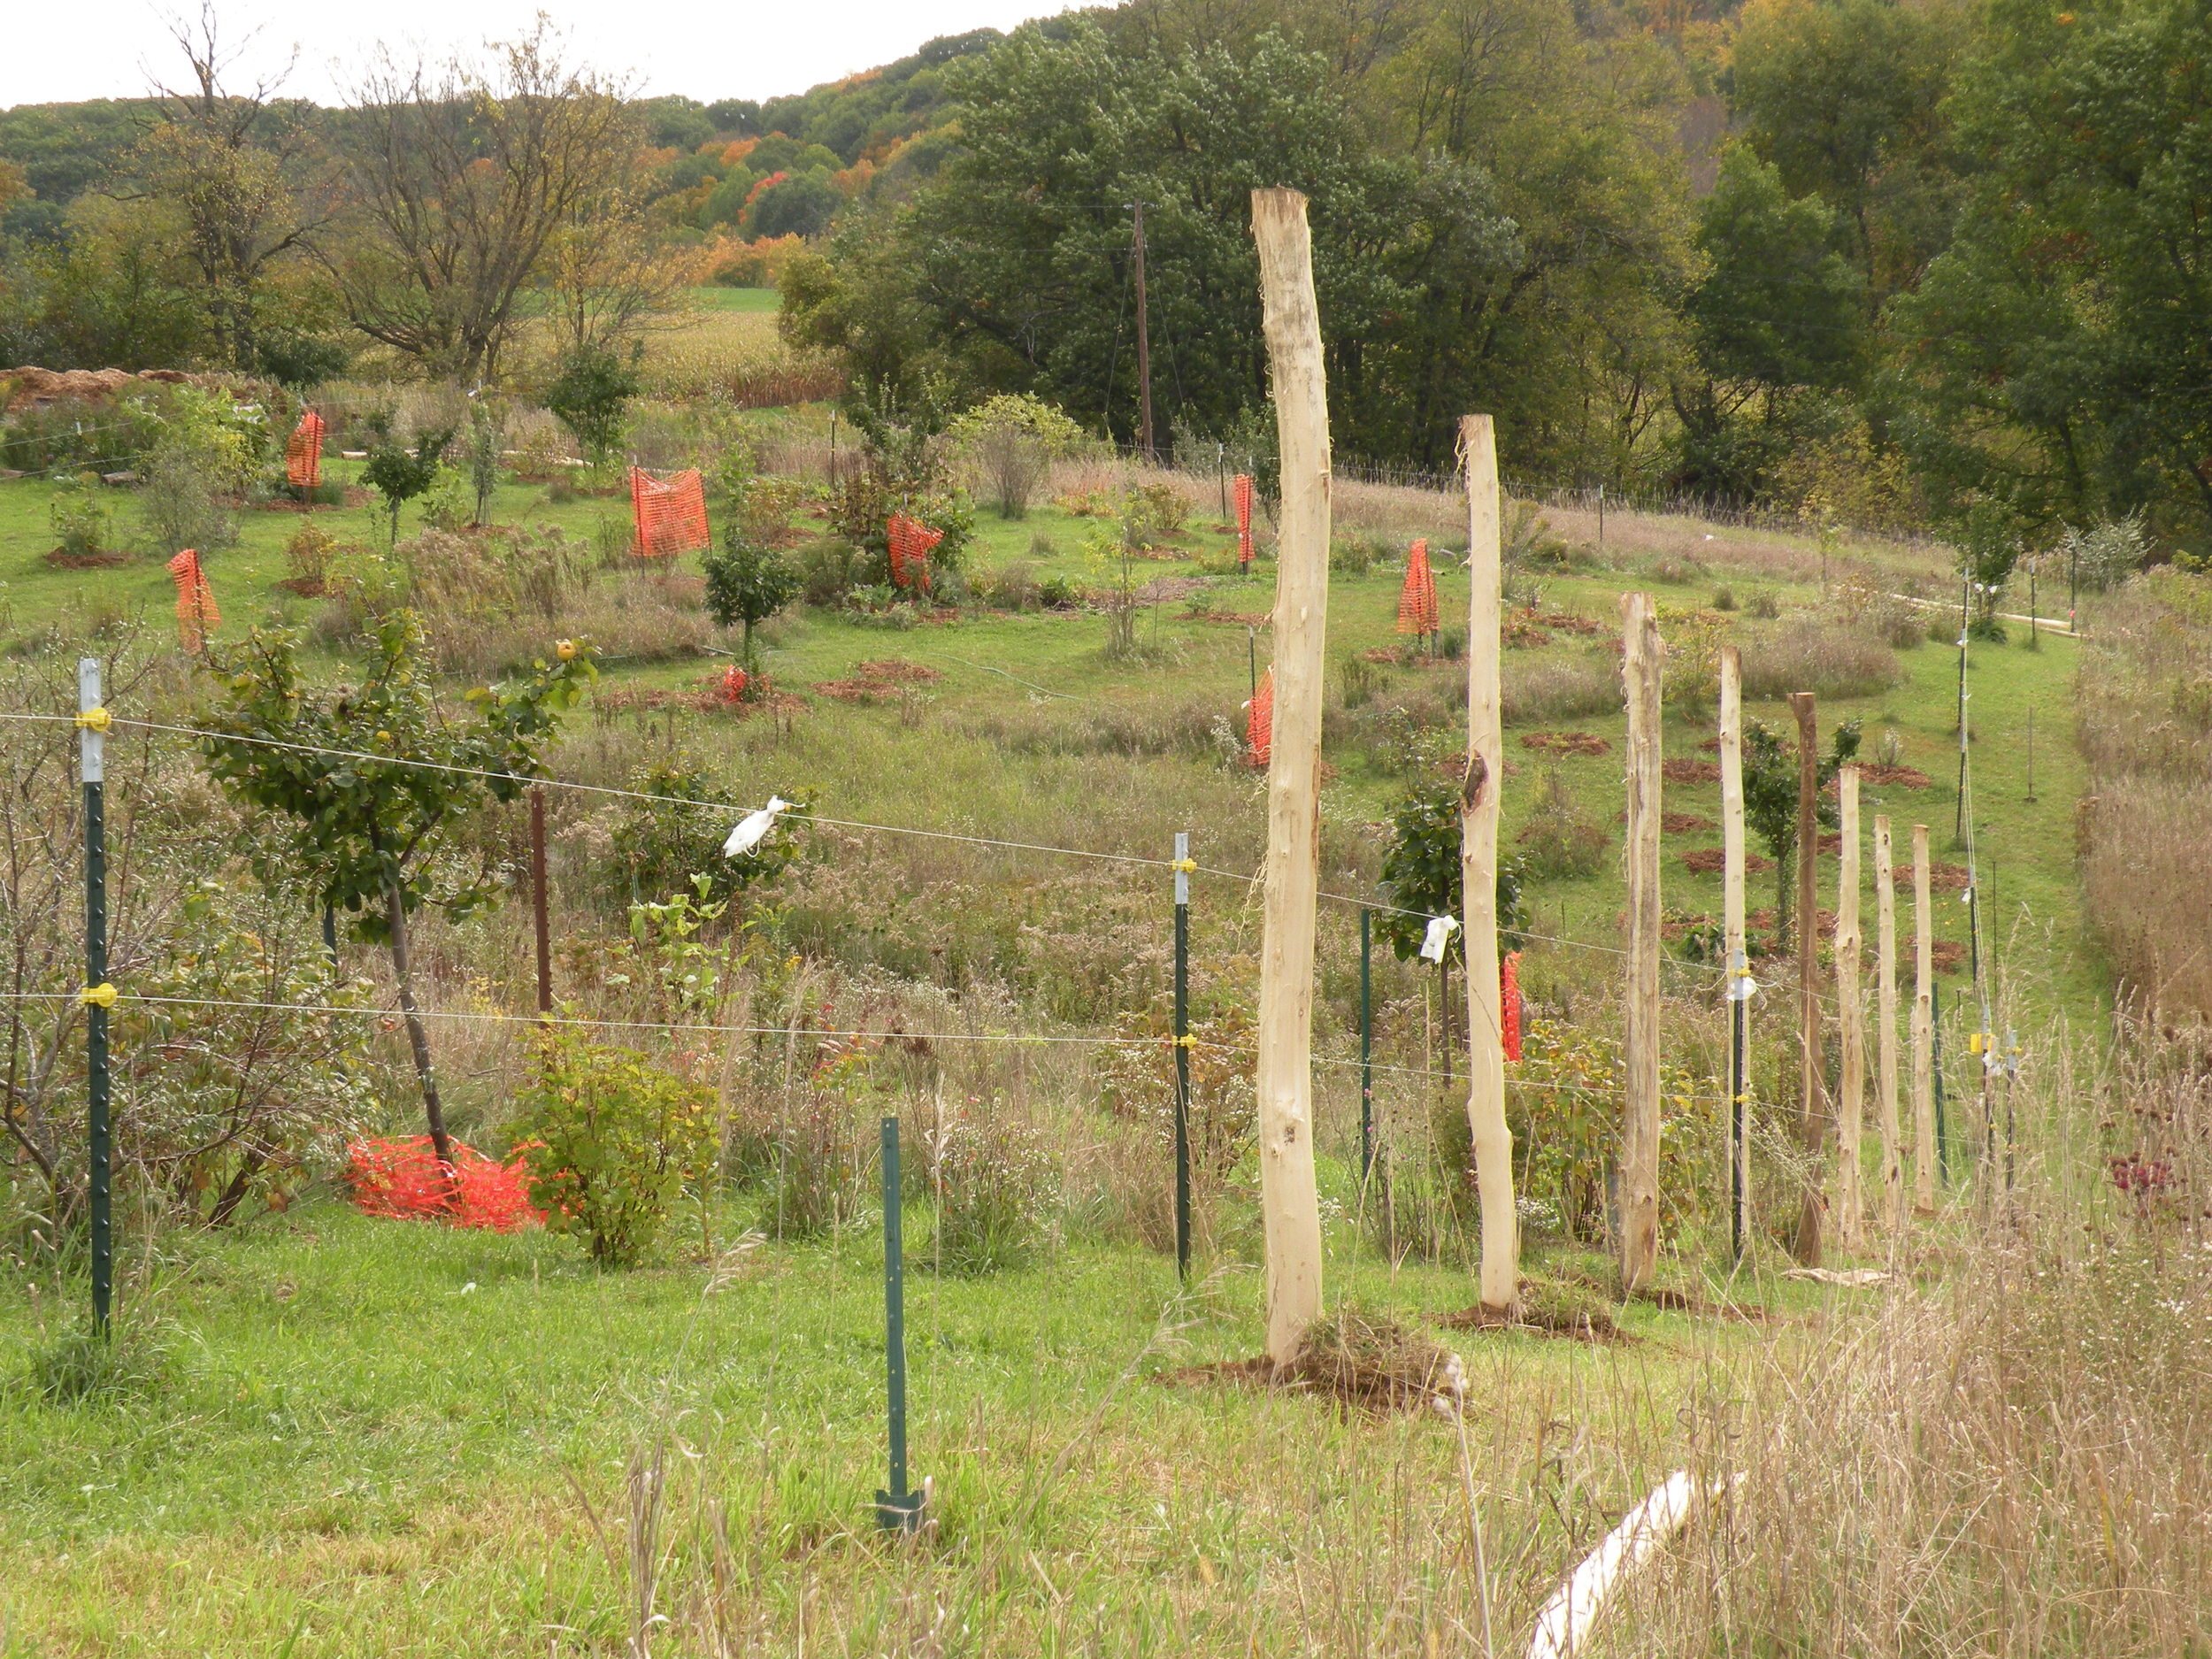 Orchard fence taking shape. We have 24 posts in the ground so far and would so appreciate 24 more funders contributing $24 or more ea in the next 24 hours! Help us nail this one home:-) Go to  indiegogo.com  for details and to donate. Thank you!